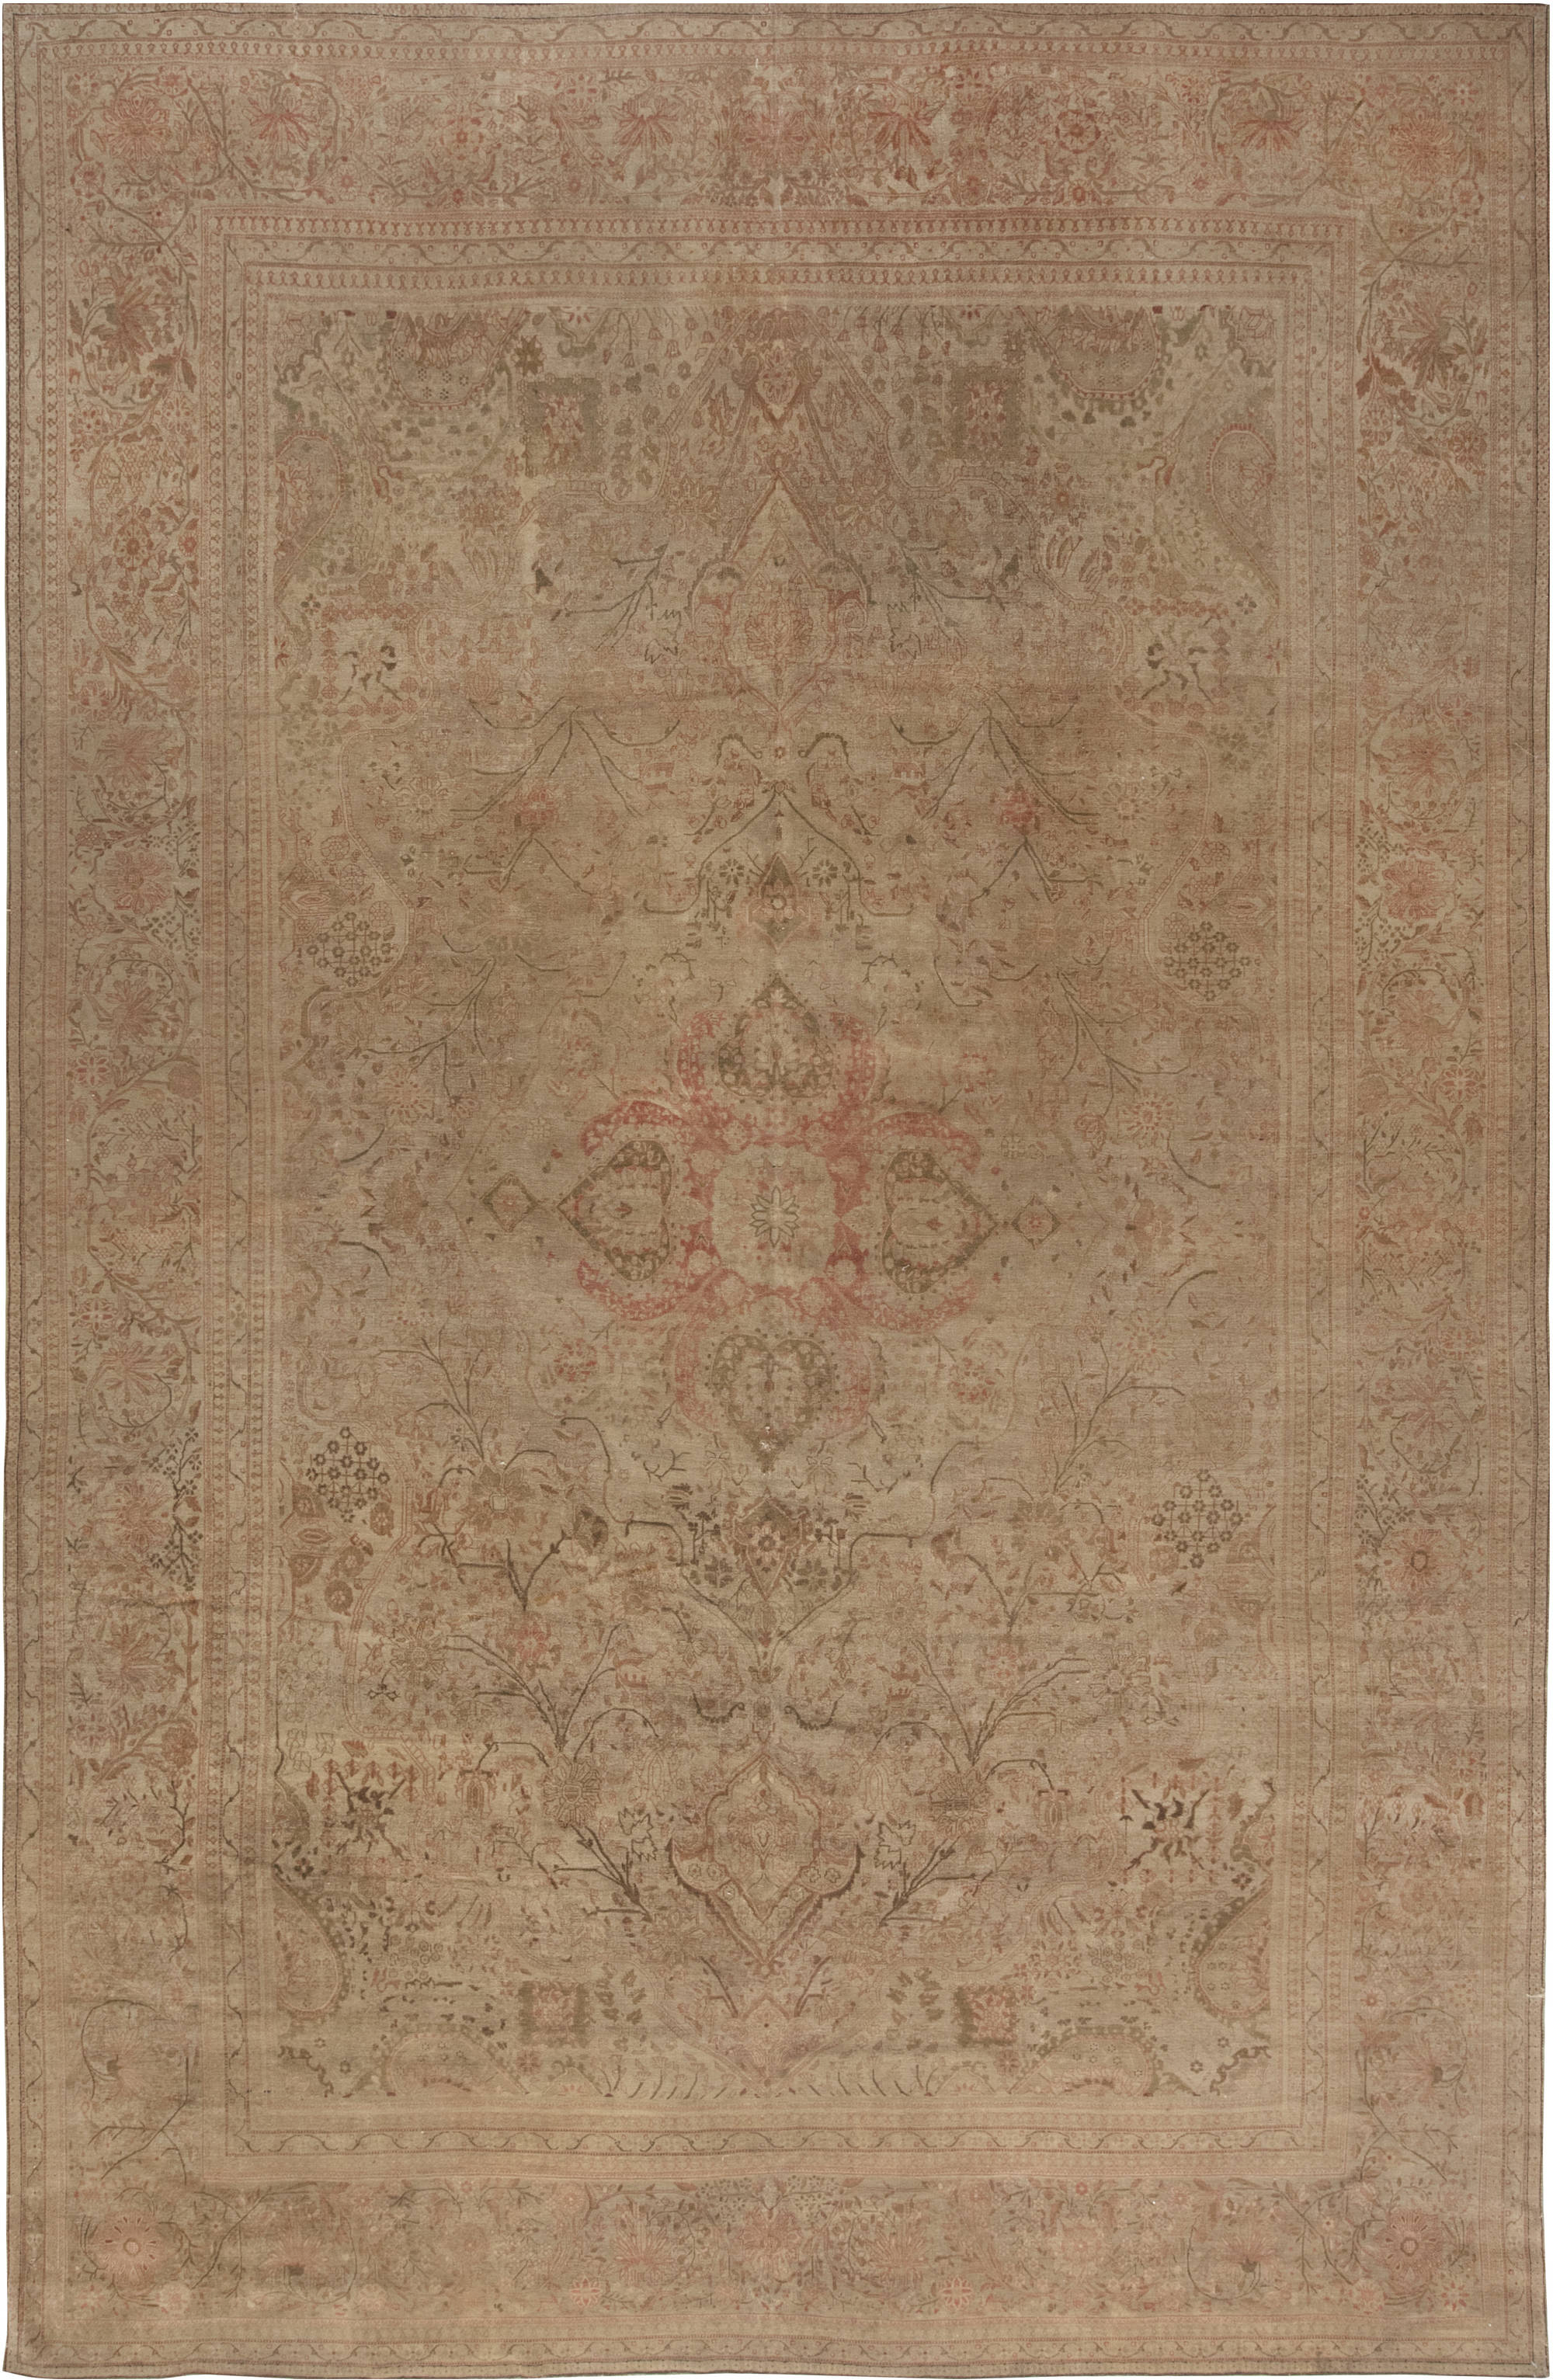 Antique Persian Kashan Rug BB4452